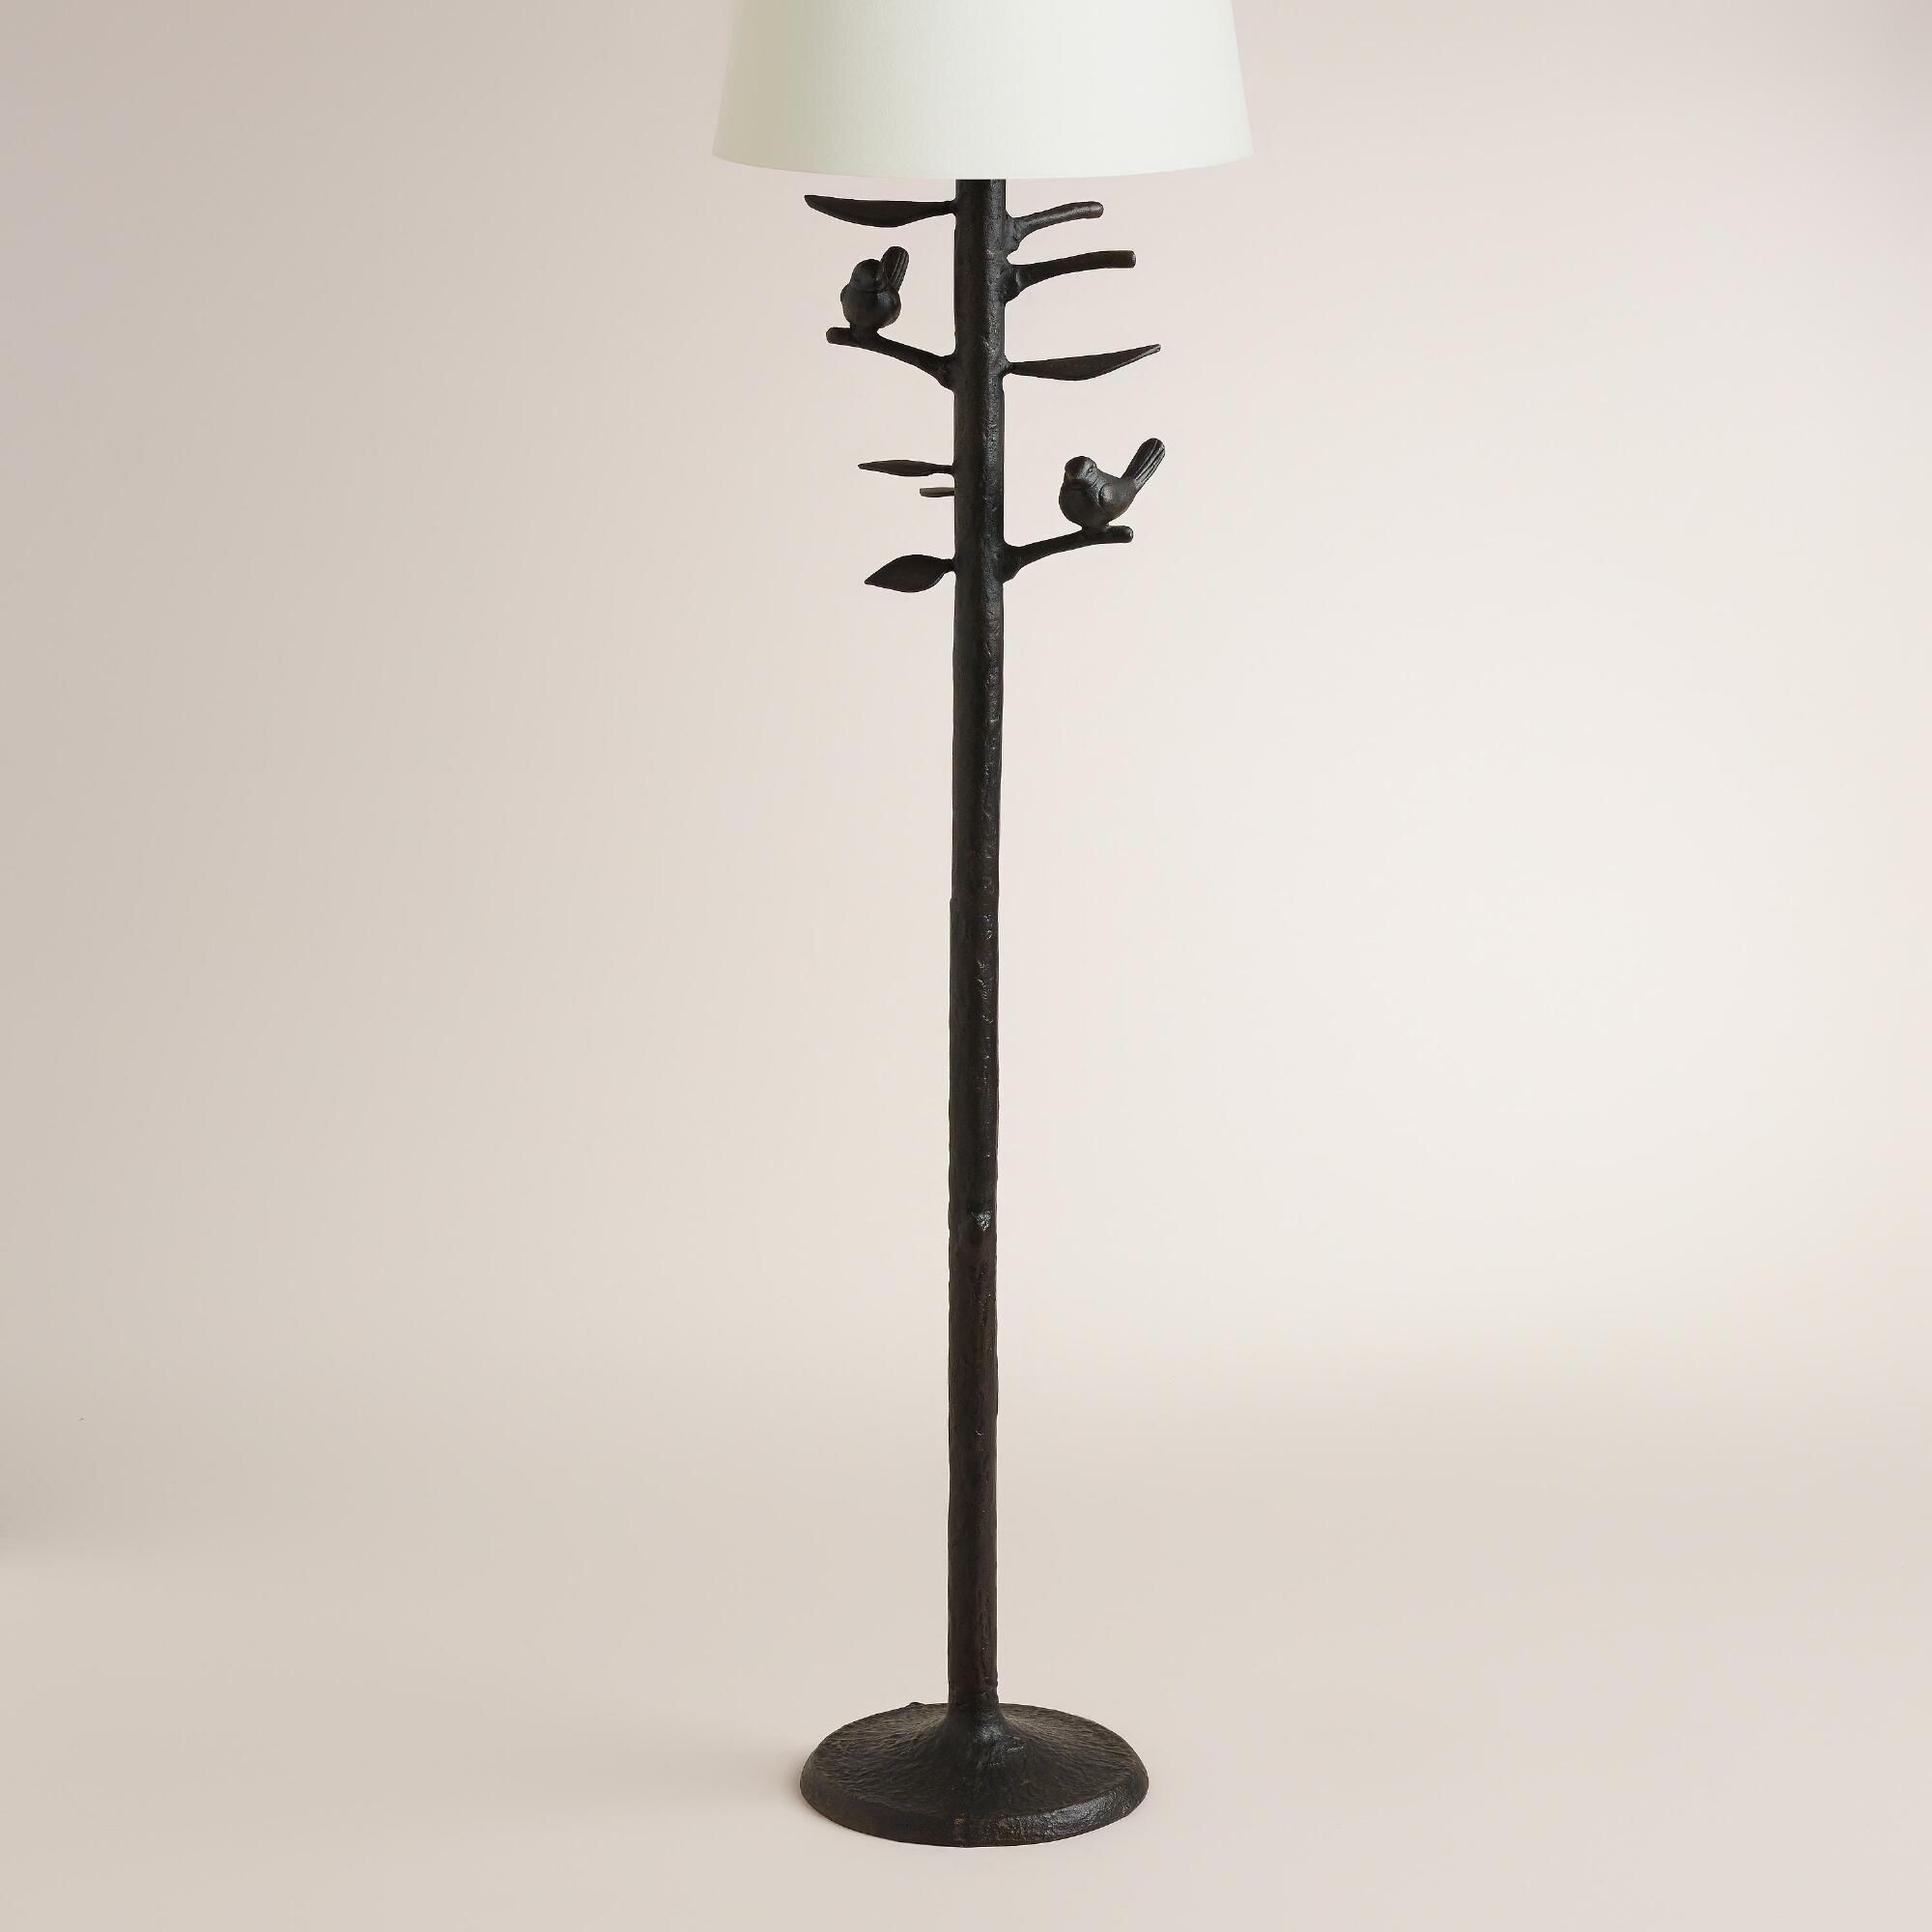 Floor Lamp Base Interesting Woodlands Floor Lamp Base  Lamp Bases Floors And The Outdoors Design Ideas